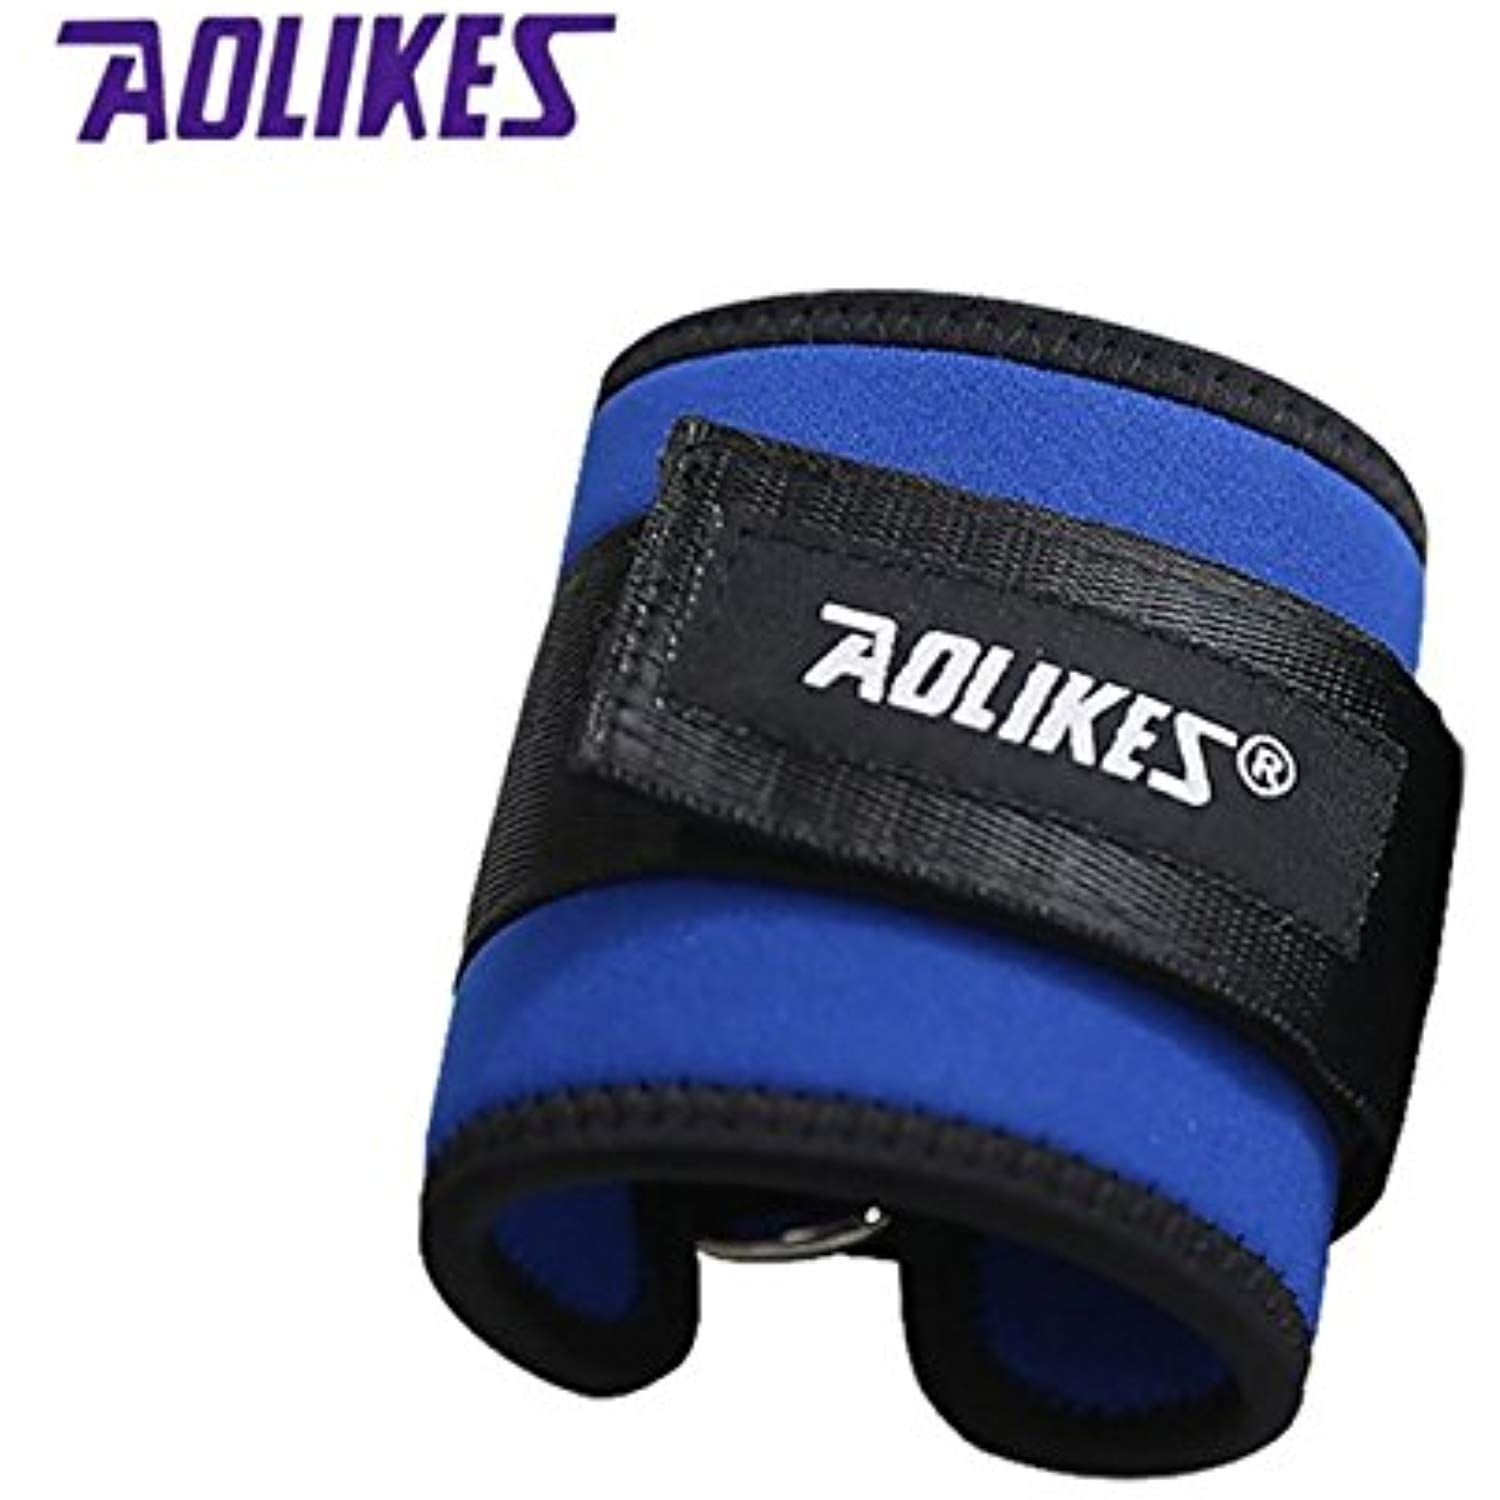 Sports Accessories Fitness Adjustable D-ring Ankle Straps Foot Support Ankle Protector Gym Leg Pullery With Buckle Sports Feet Guard Ankle Support